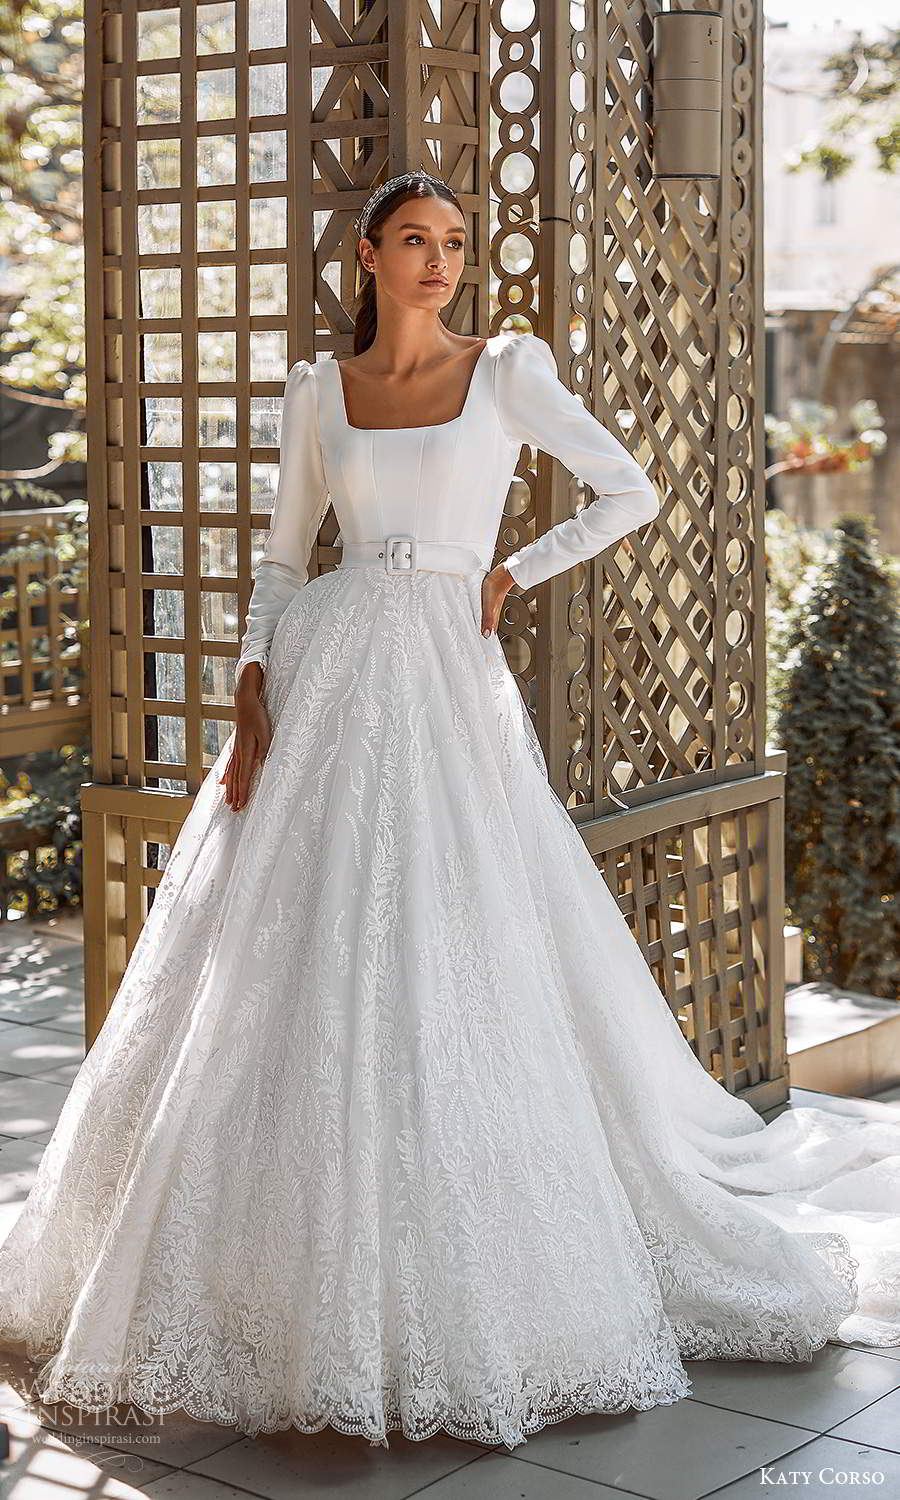 katy corso 2021 bridal long puff sleeves square neckline clean bodice embellished lace skirt a line ball gown wedding dress chapel train (5) mv